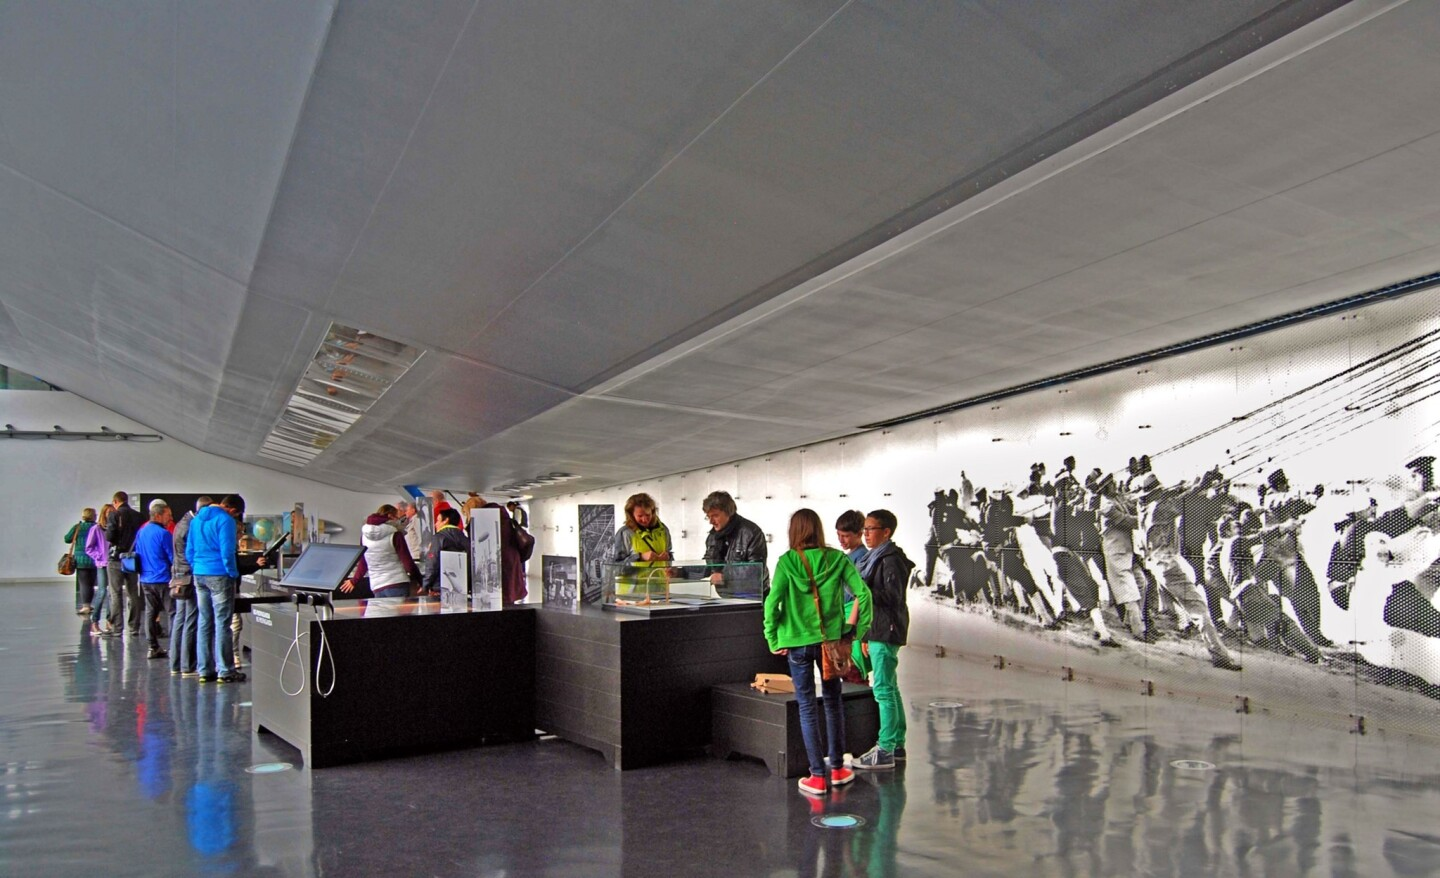 The Zeppelin Museum features a full-size replica of the Hindenburg's starboard section looming over visitors and other exhibits.